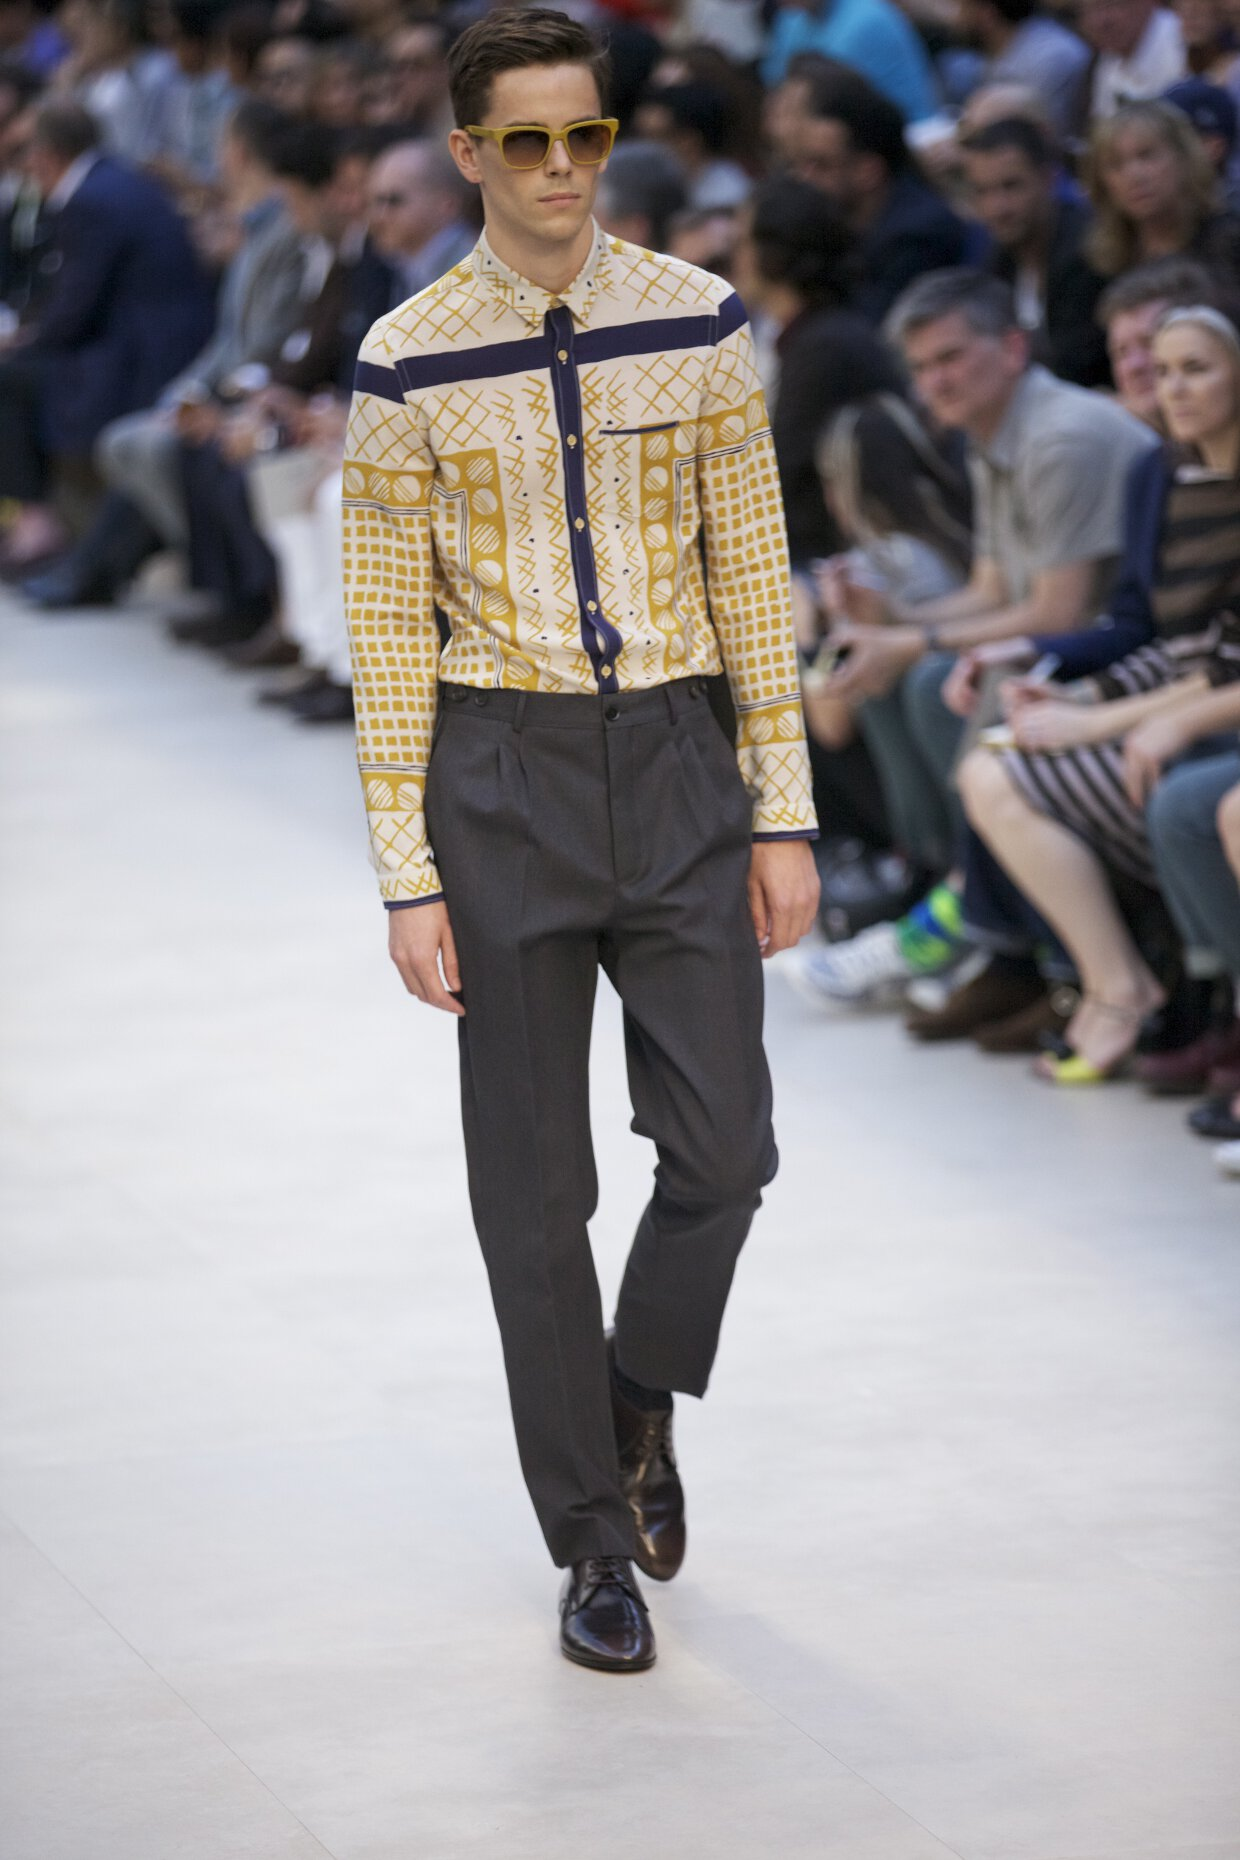 BURBERRY PRORSUM SPRING SUMMER 2013 MEN'S COLLECTION